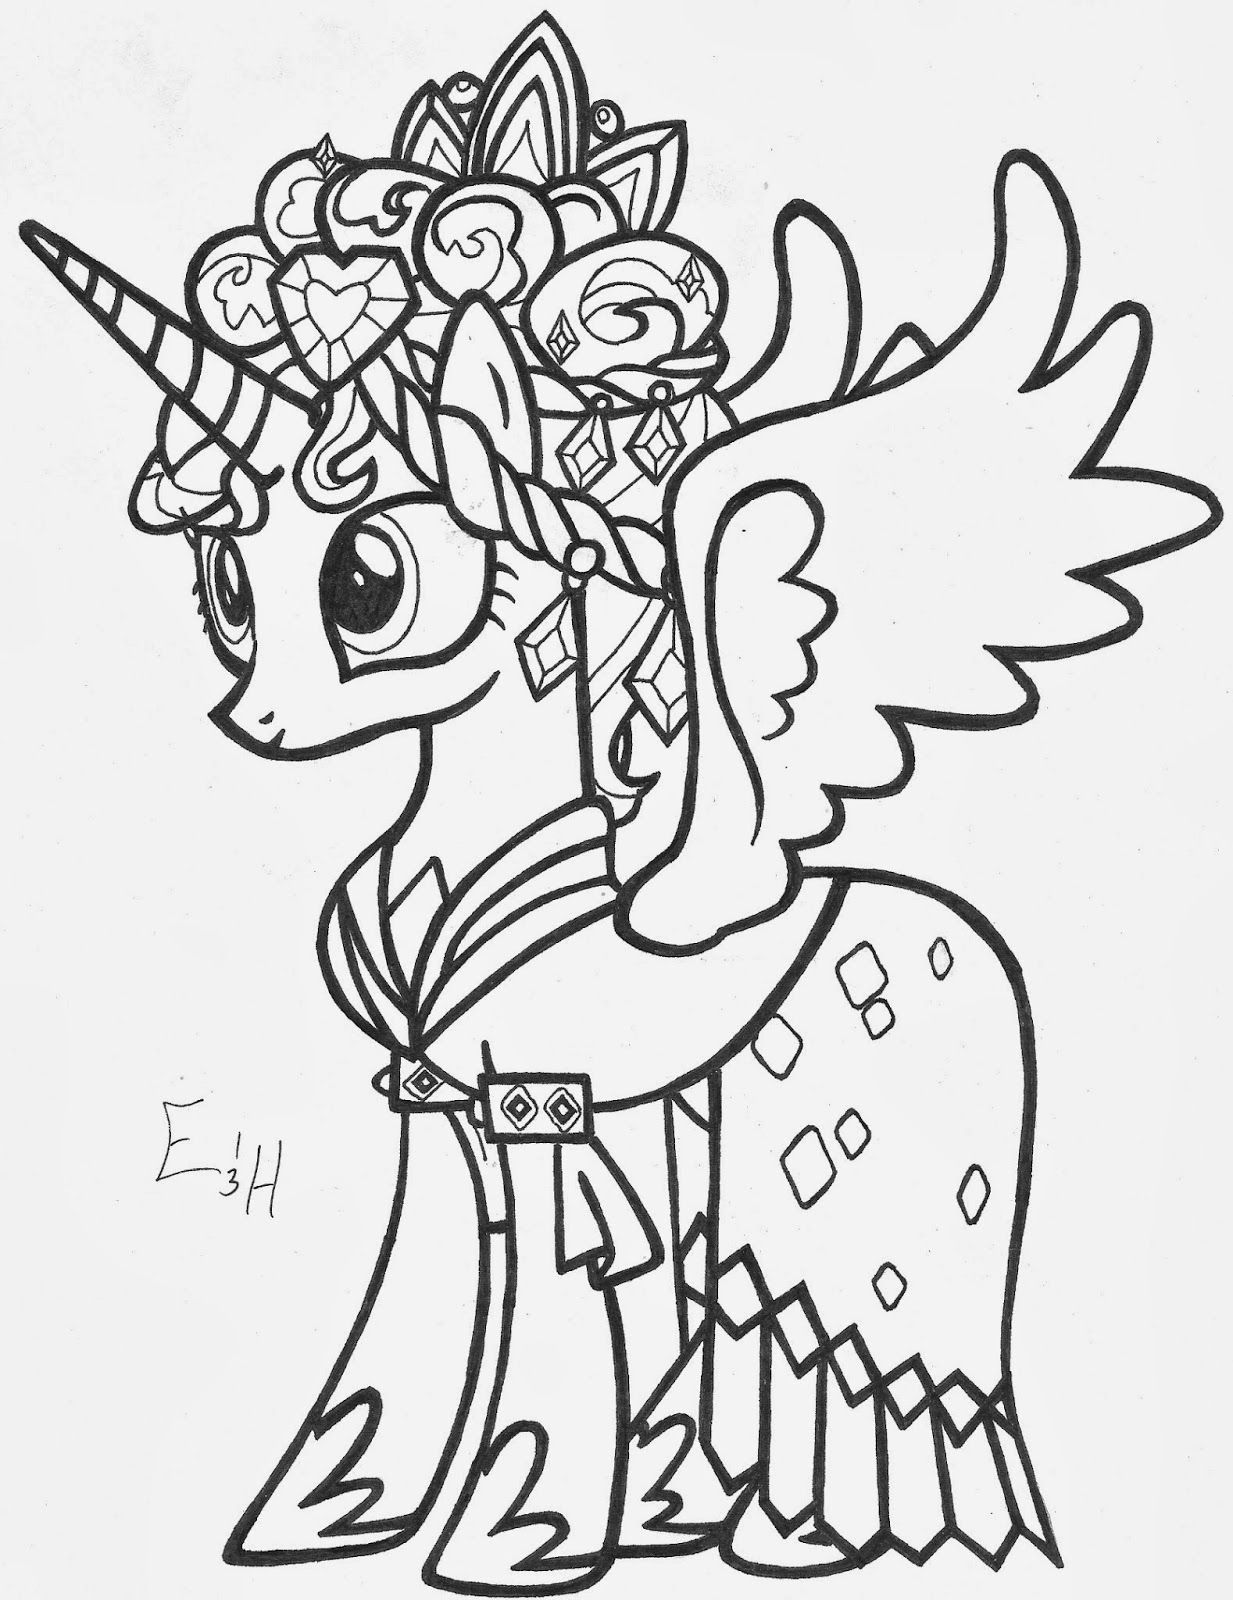 mlp coloring page my little pony fluttershy coloring pages minister coloring coloring mlp page